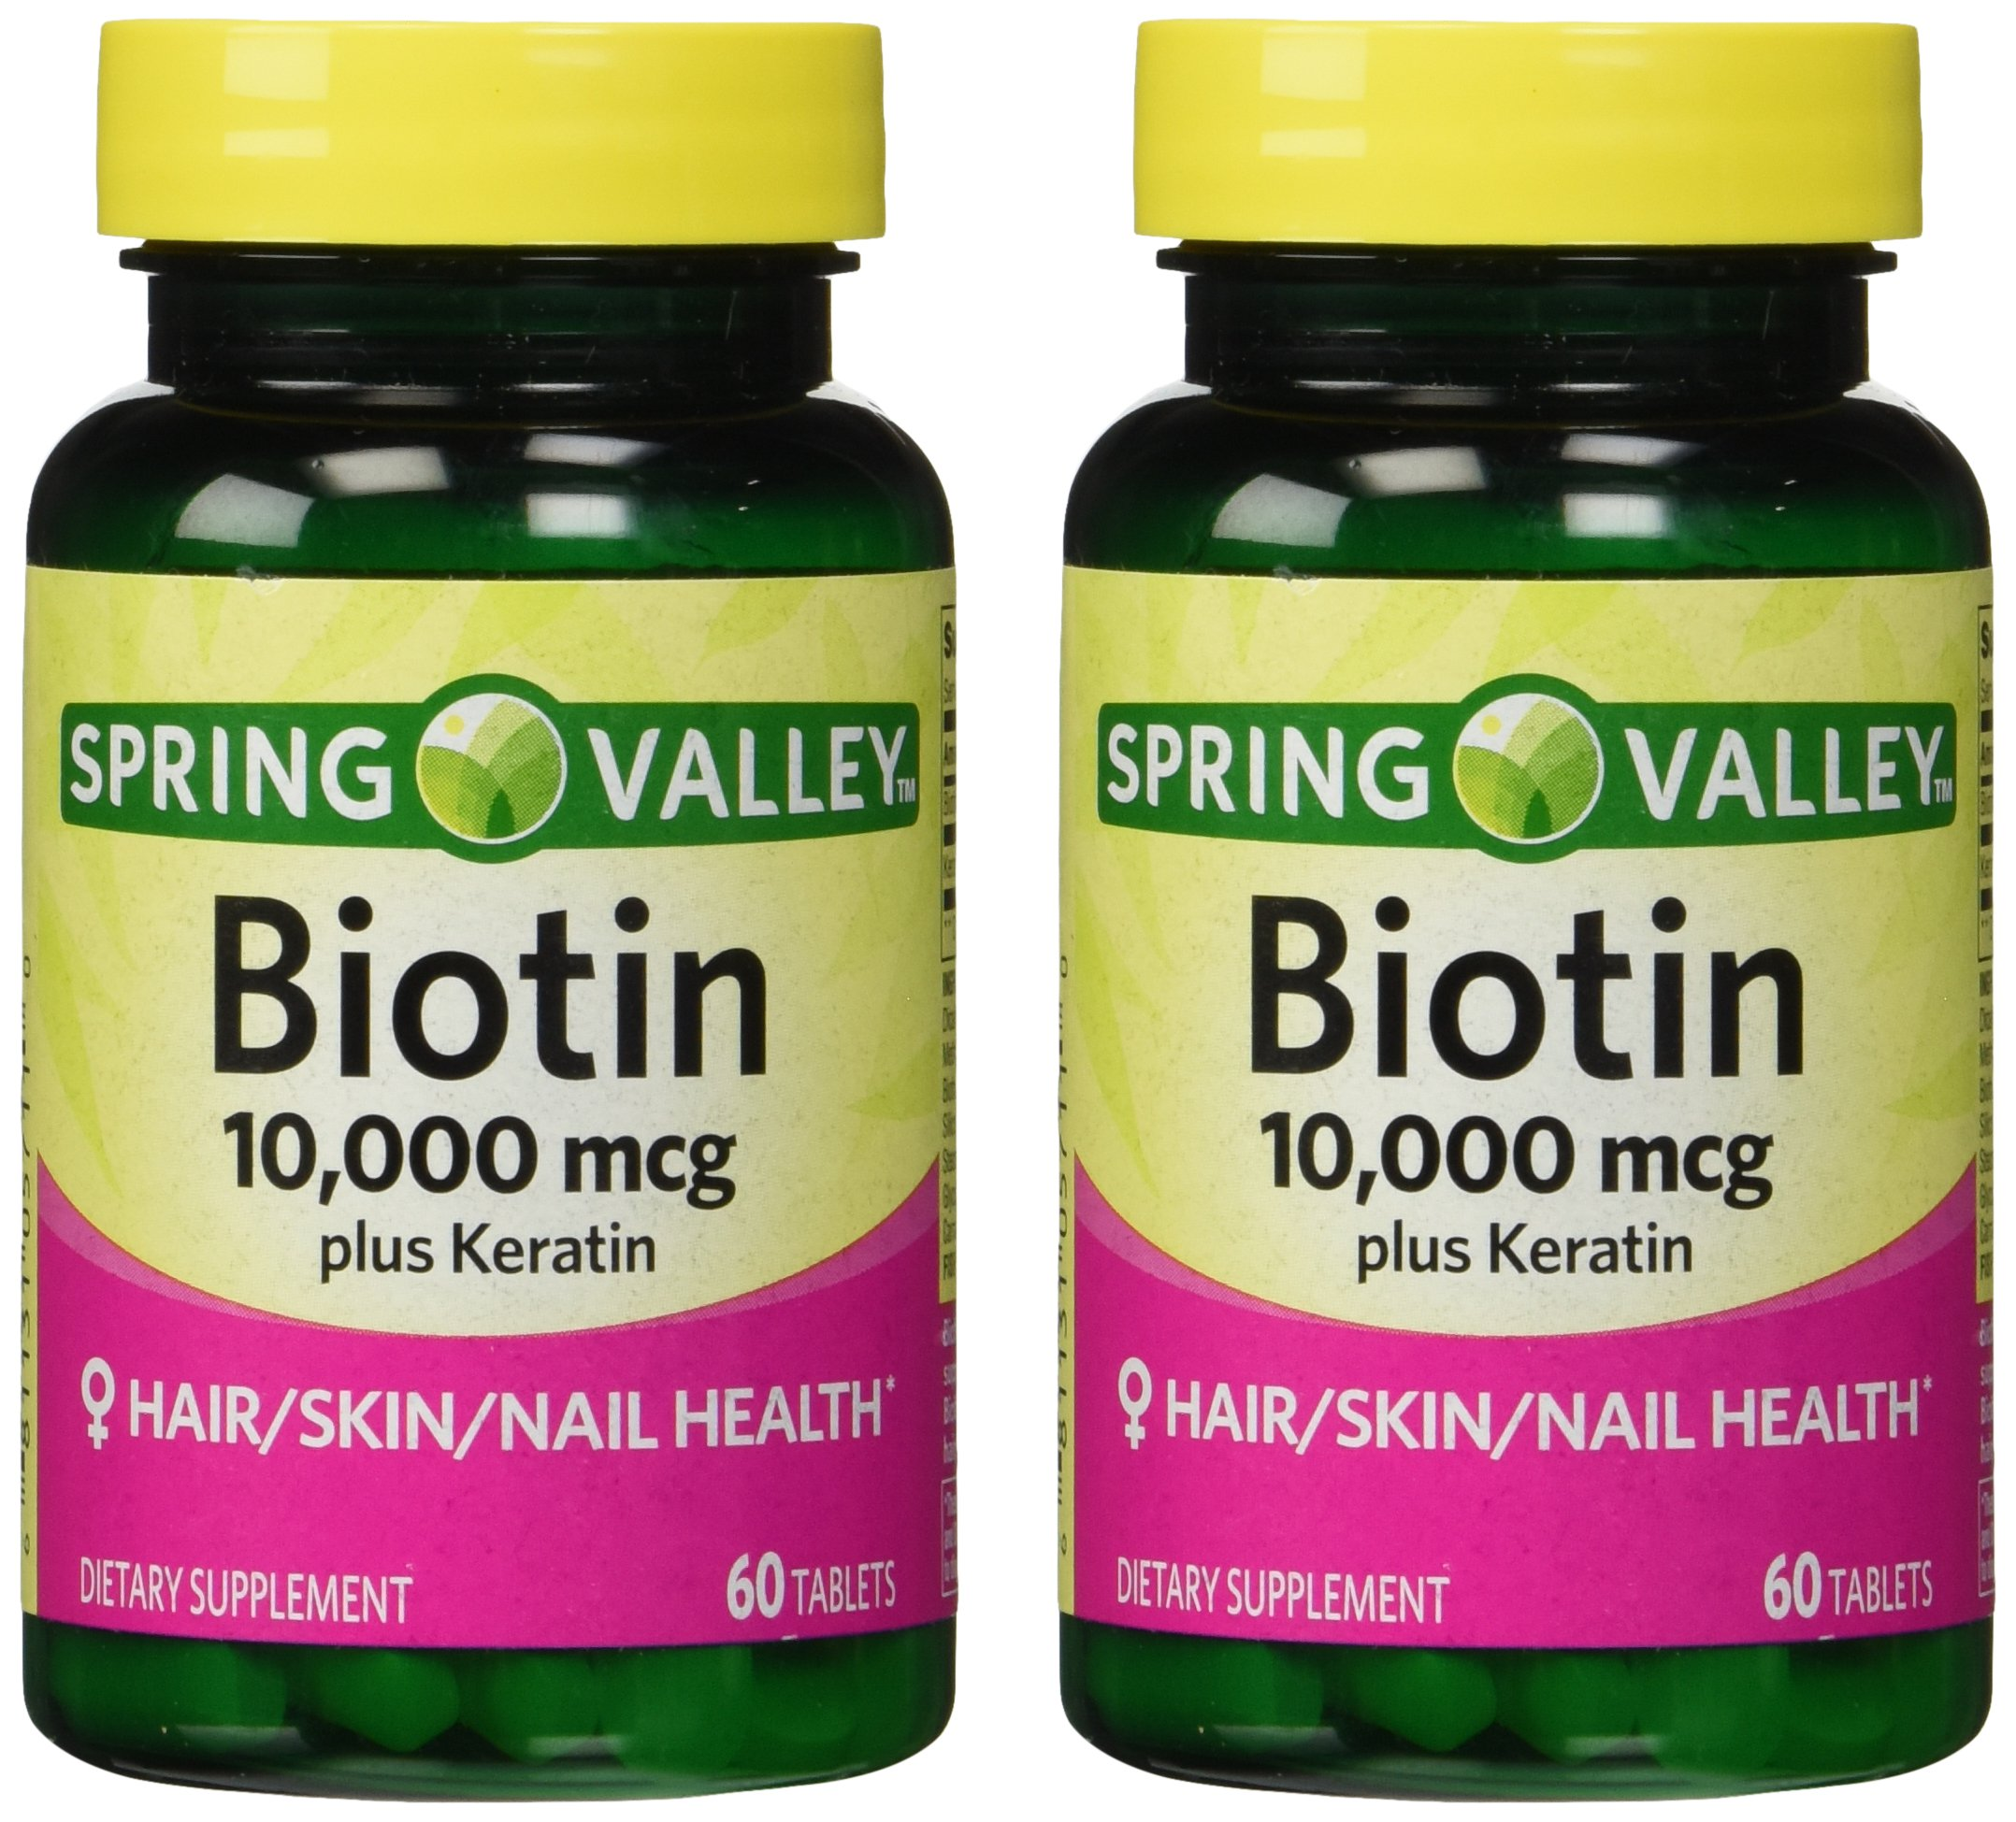 Spring Valley 10000mcg Biotin with 100mg Keratin Dietary Supplement, 60 Tablets (Pack of 2) by Spring Valley